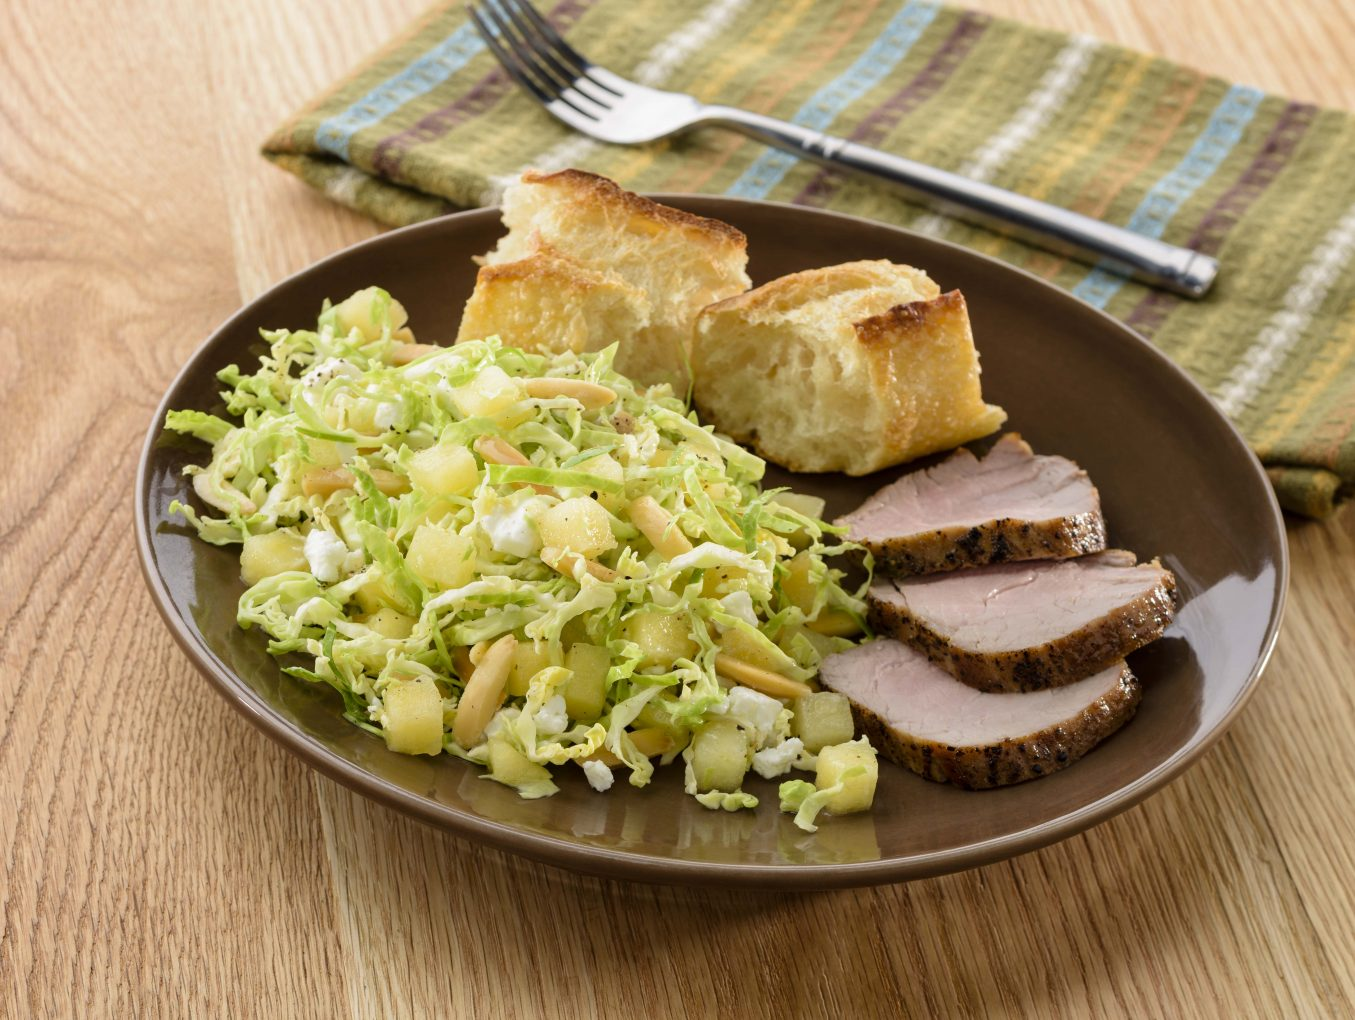 Apple & Brussels Sprout Salad